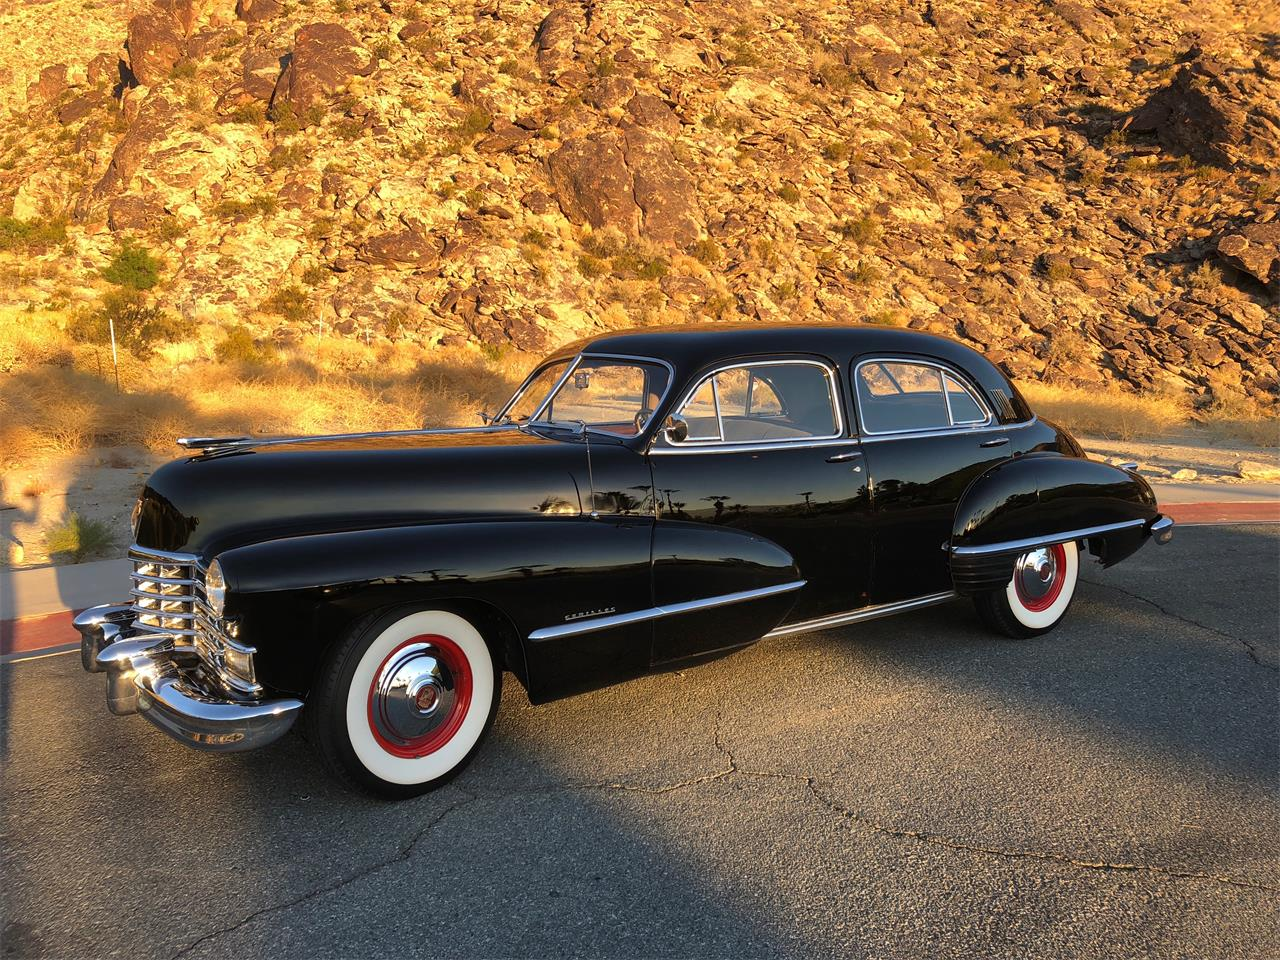 Large Picture of Classic '46 Cadillac Fleetwood 60 Special located in California - QMKK